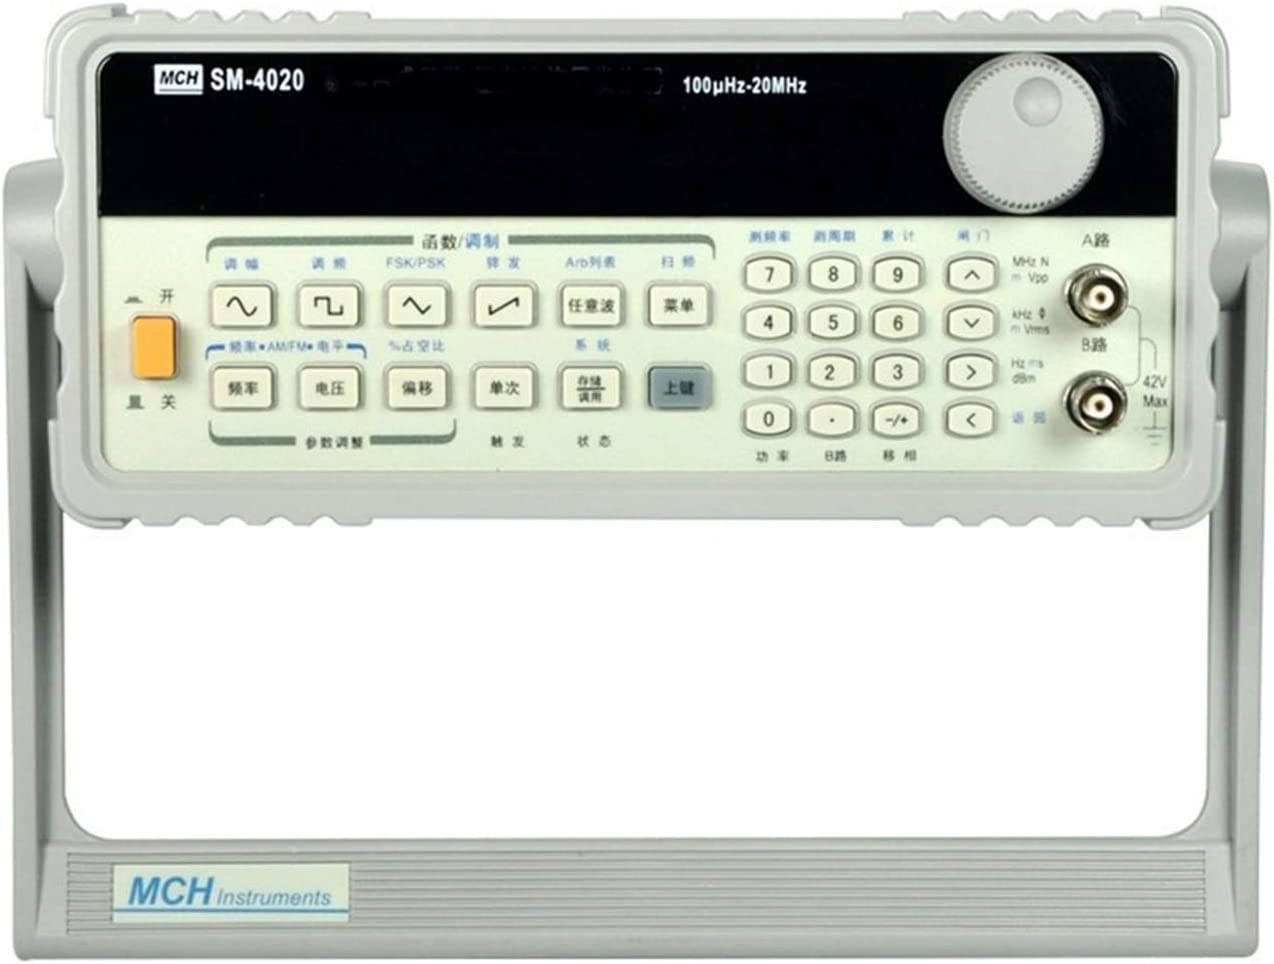 Size : 198-242V Multi Testers Arbitrary Wave Function Signal Generator 20MHZ Electronic Laboratory Equipment MCH-4020,Wide Measurement Range